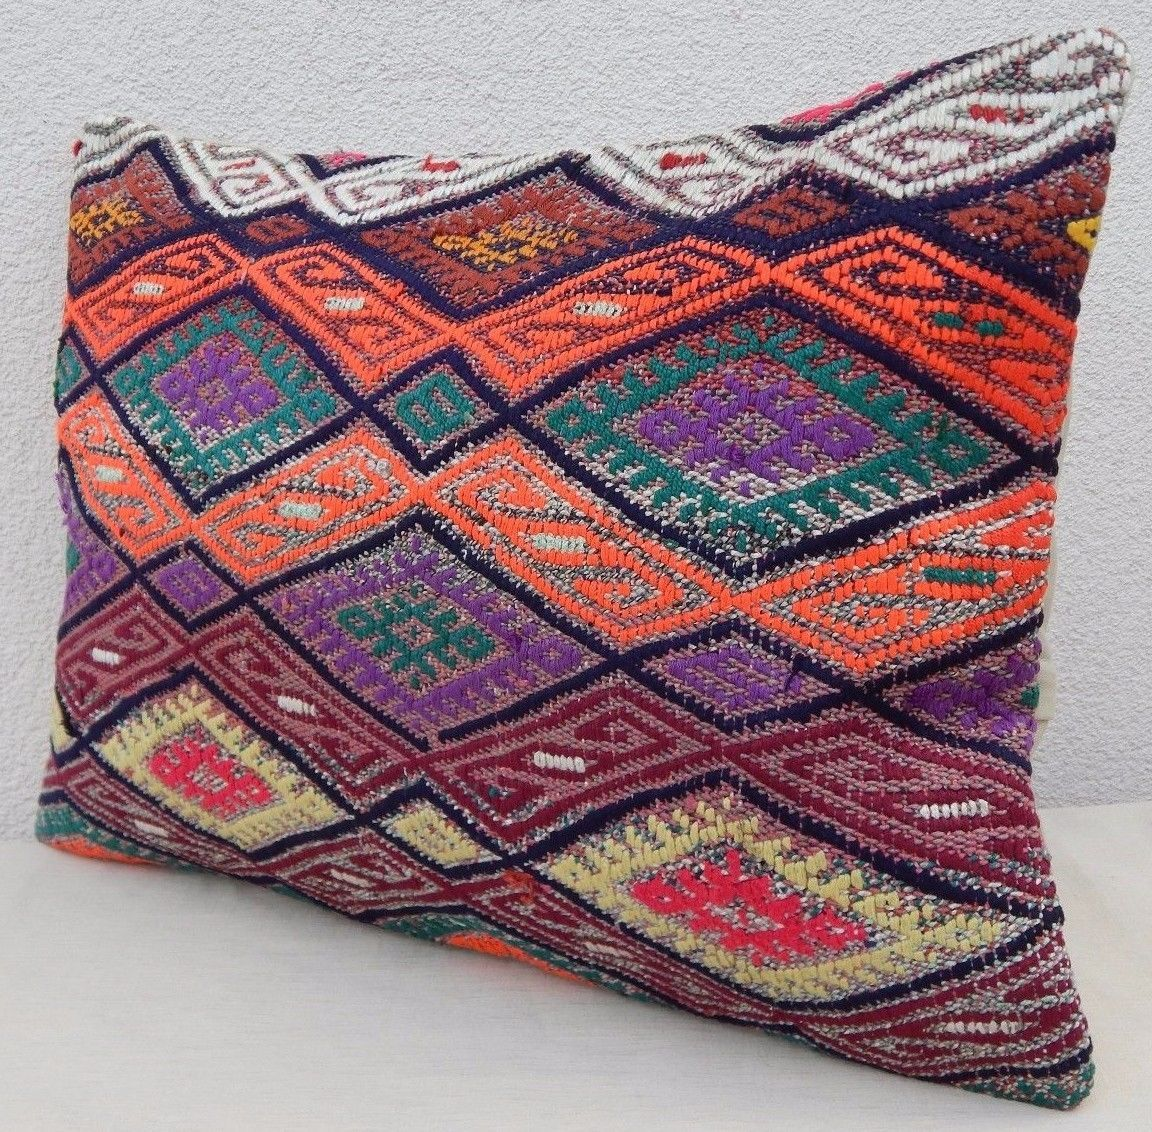 16 X 24 Throw Pillow Covers : 16 X 24 Body Pillow Cover,Decorative Throw Pillows,Multi Color Kilim Cushion - Pillows